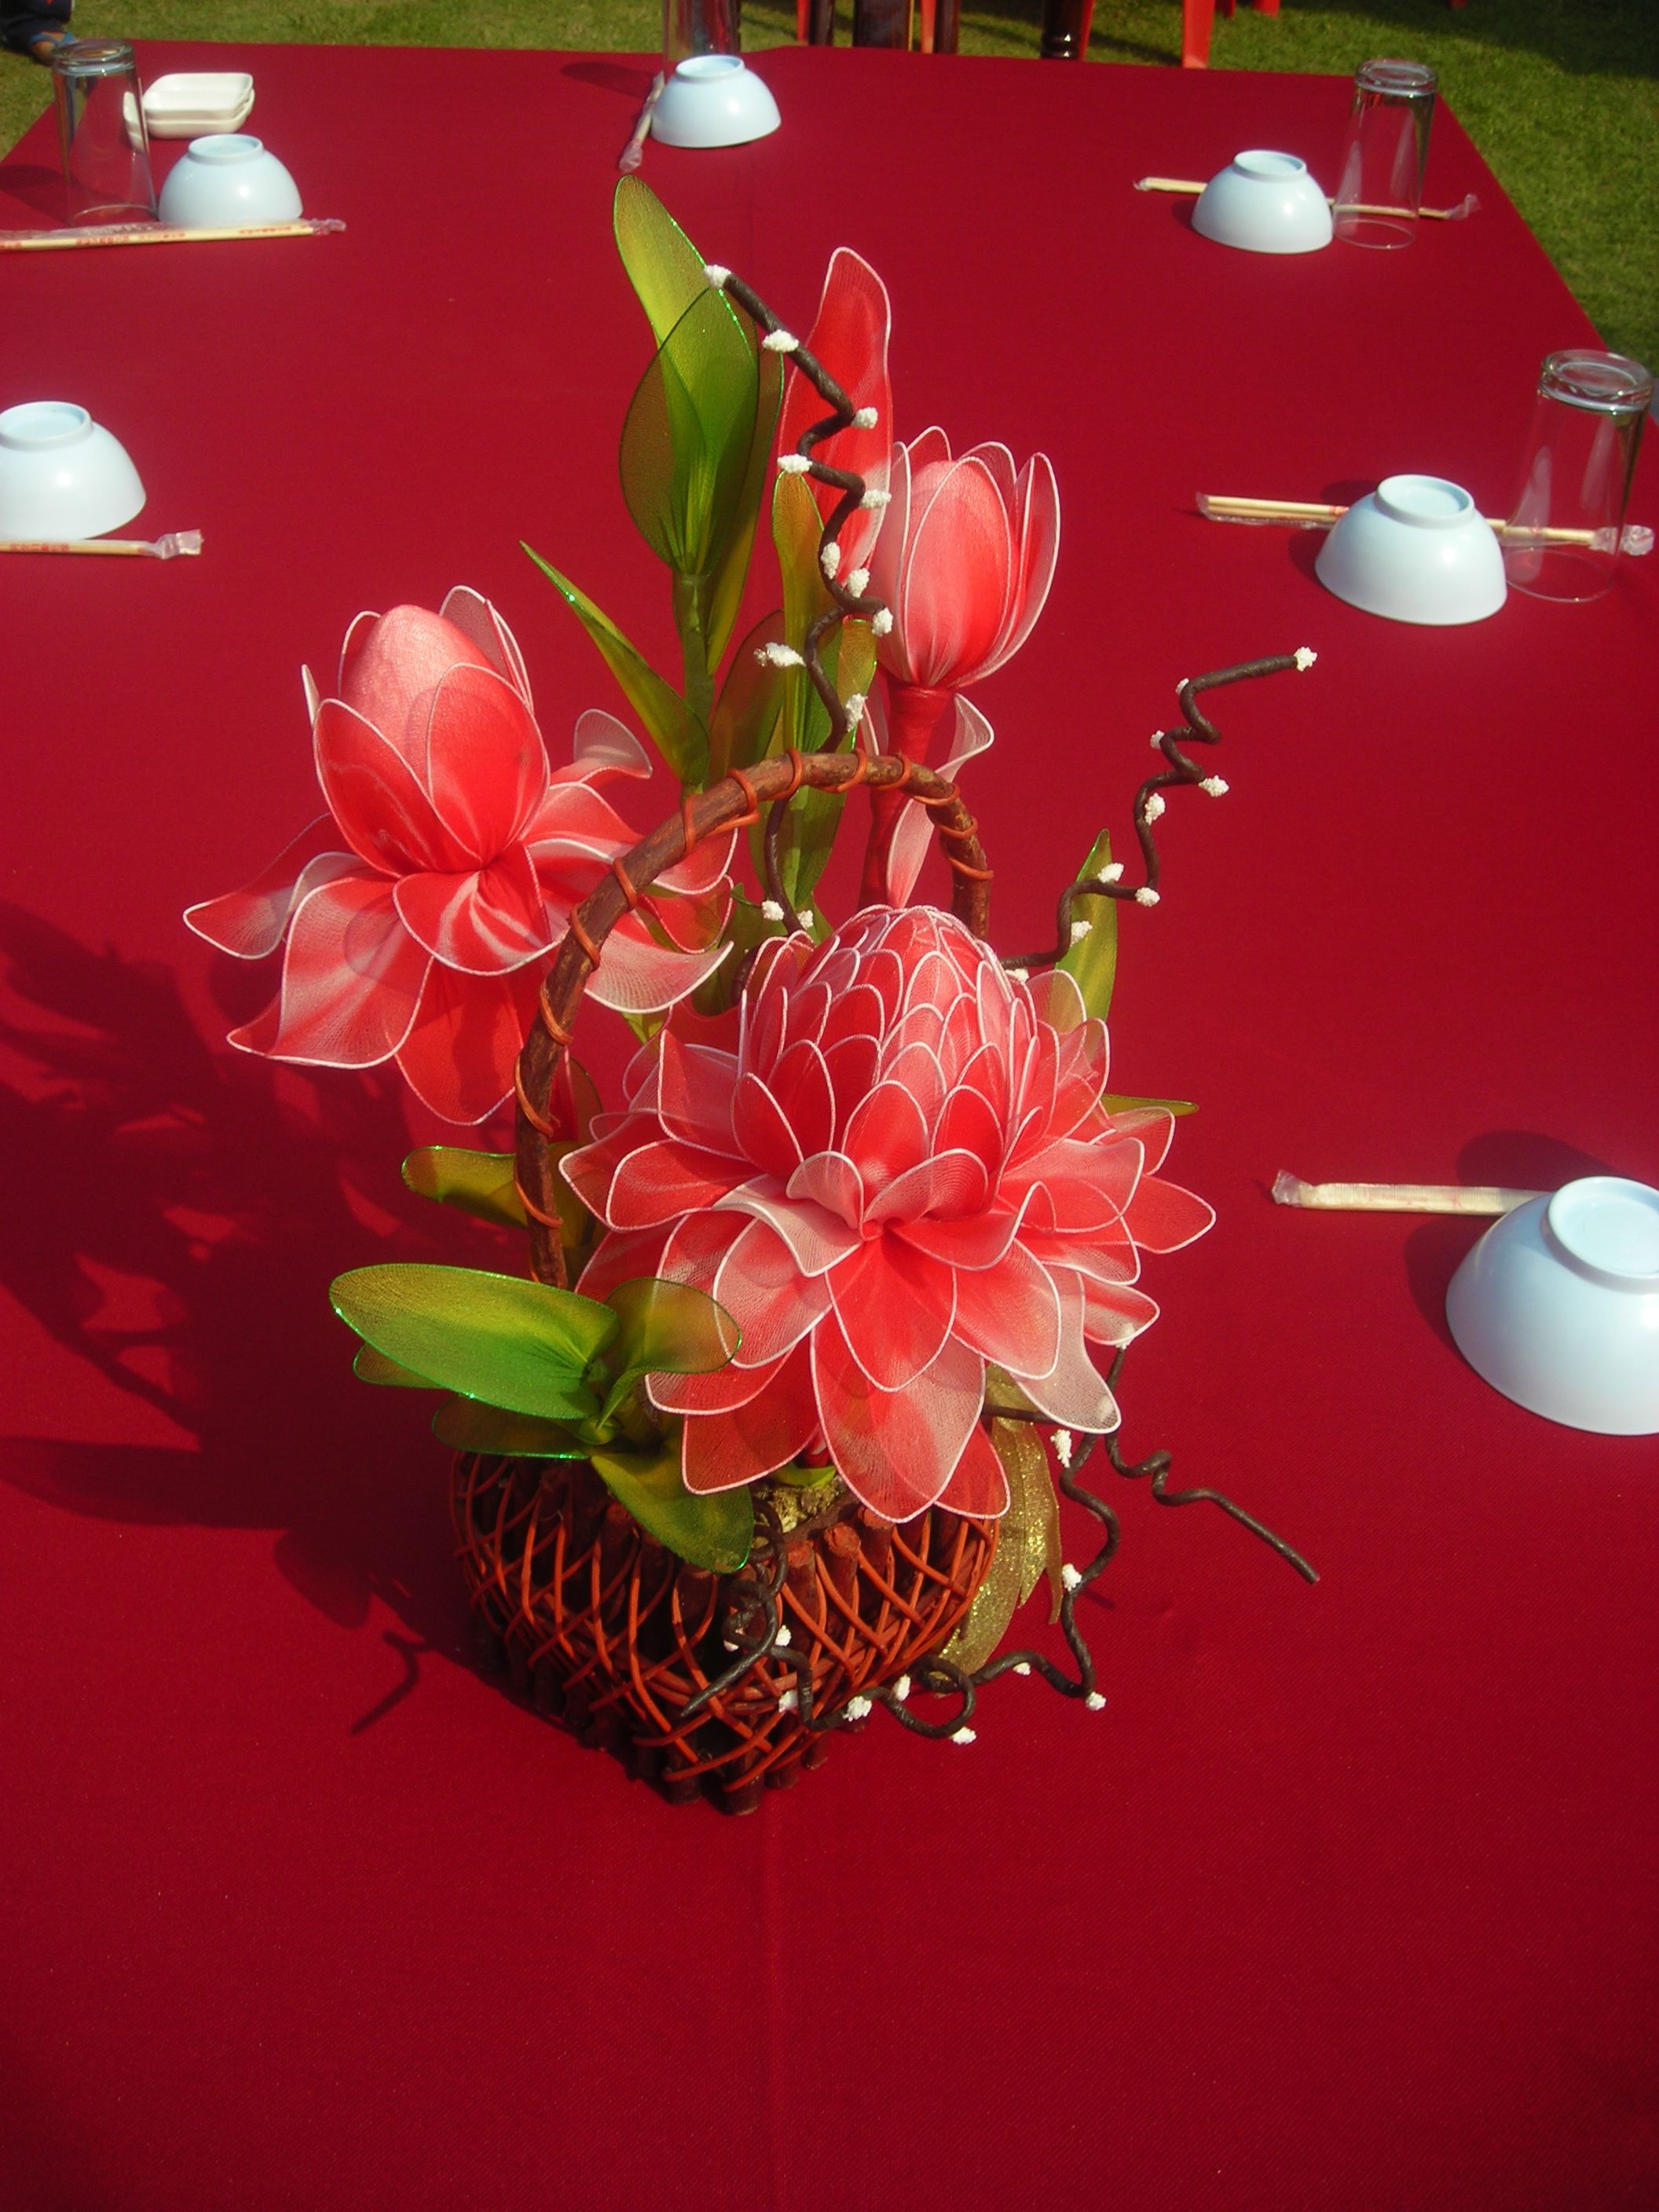 Red artificial flower as table decoration